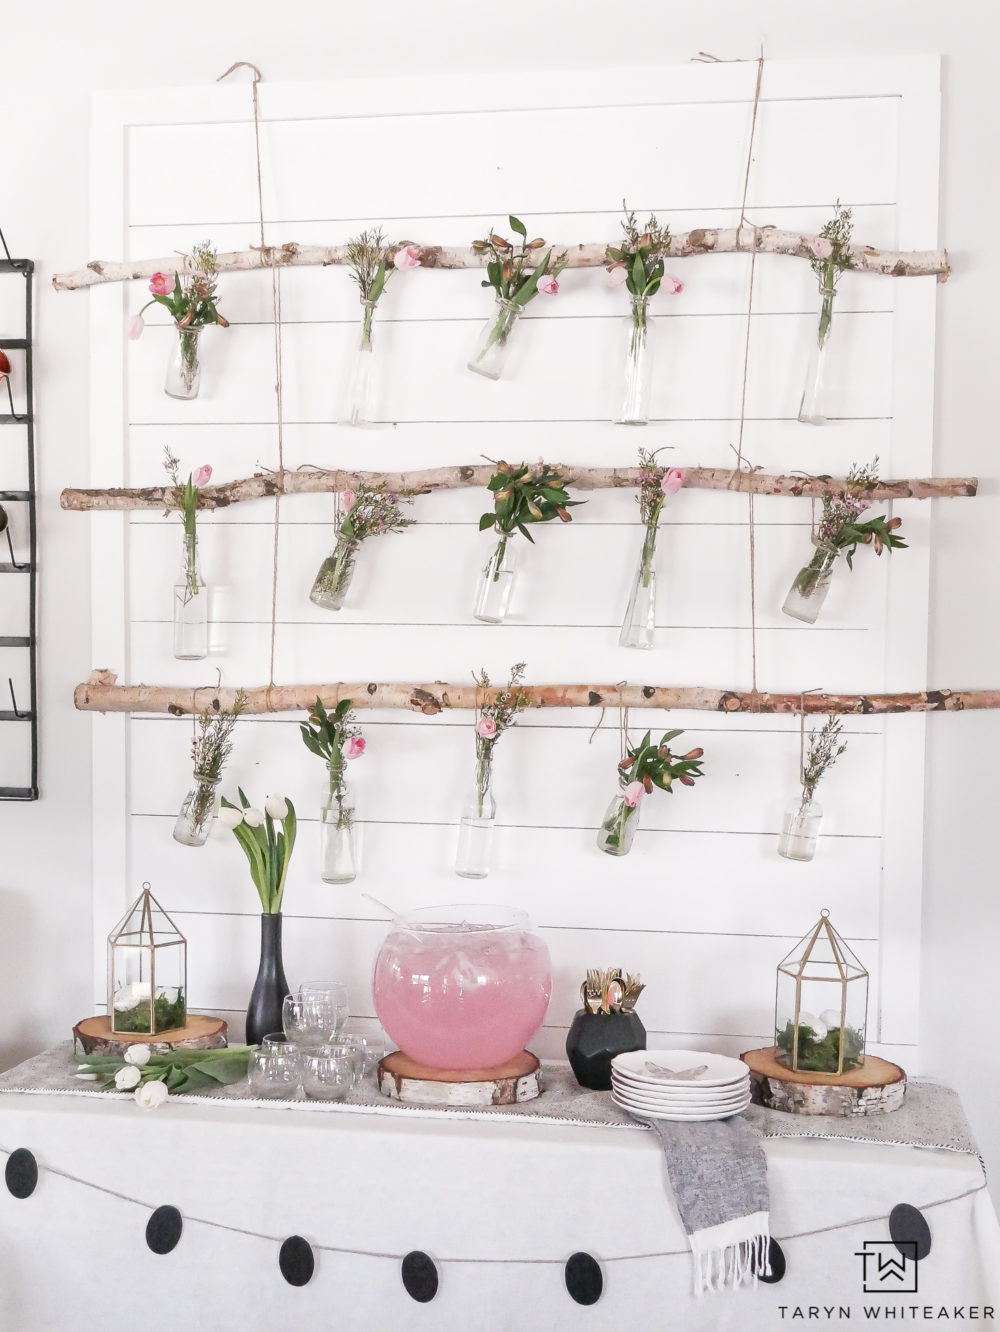 Diy hanging floral backdrop taryn whiteaker for Diy hanging picture display